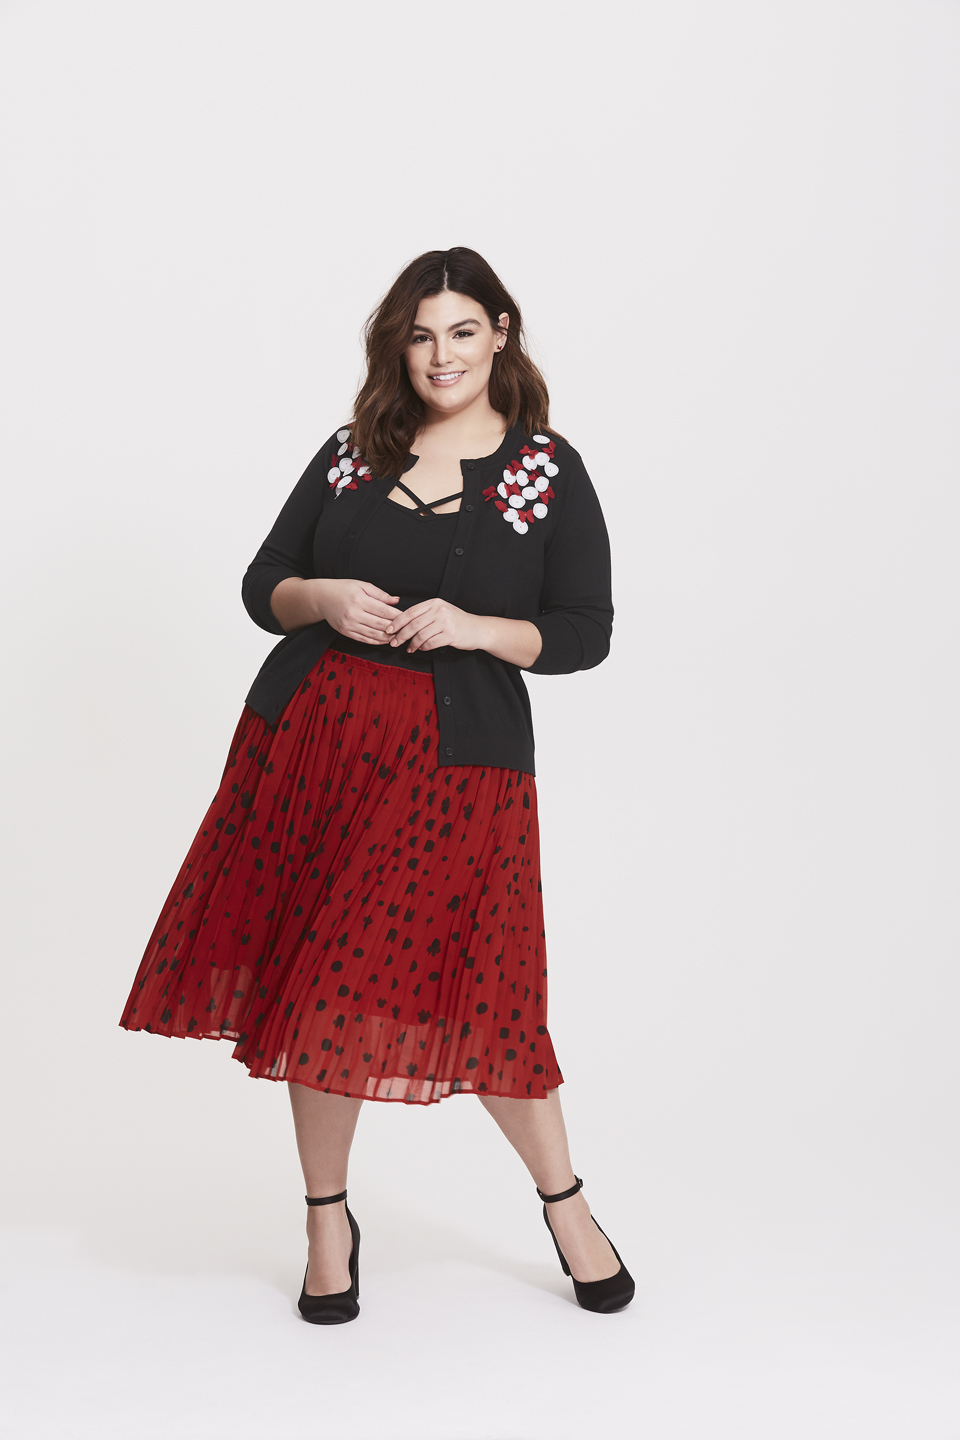 ba360949b0 Torrid released a Minnie Mouse-inspired fashion collection ...